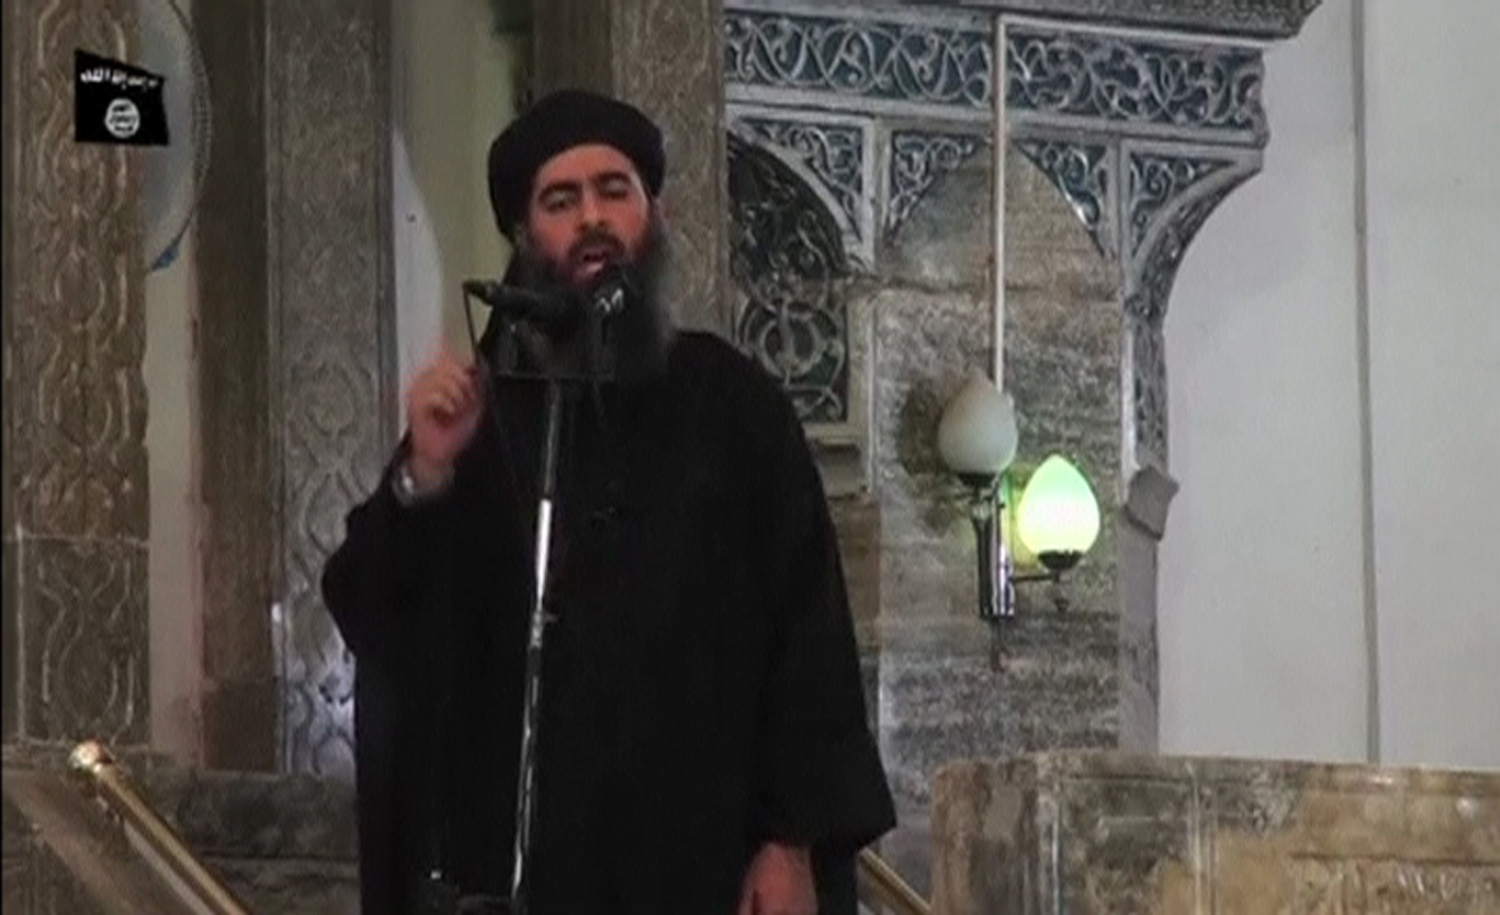 Smage taken from recently released video shows man purported to be Abu Bakr al-Baghdadi, ISIL's reclusive leader, making what would be his first public appearance at a mosque in the centre of Iraq's second city, Mosul July 5, 2014.